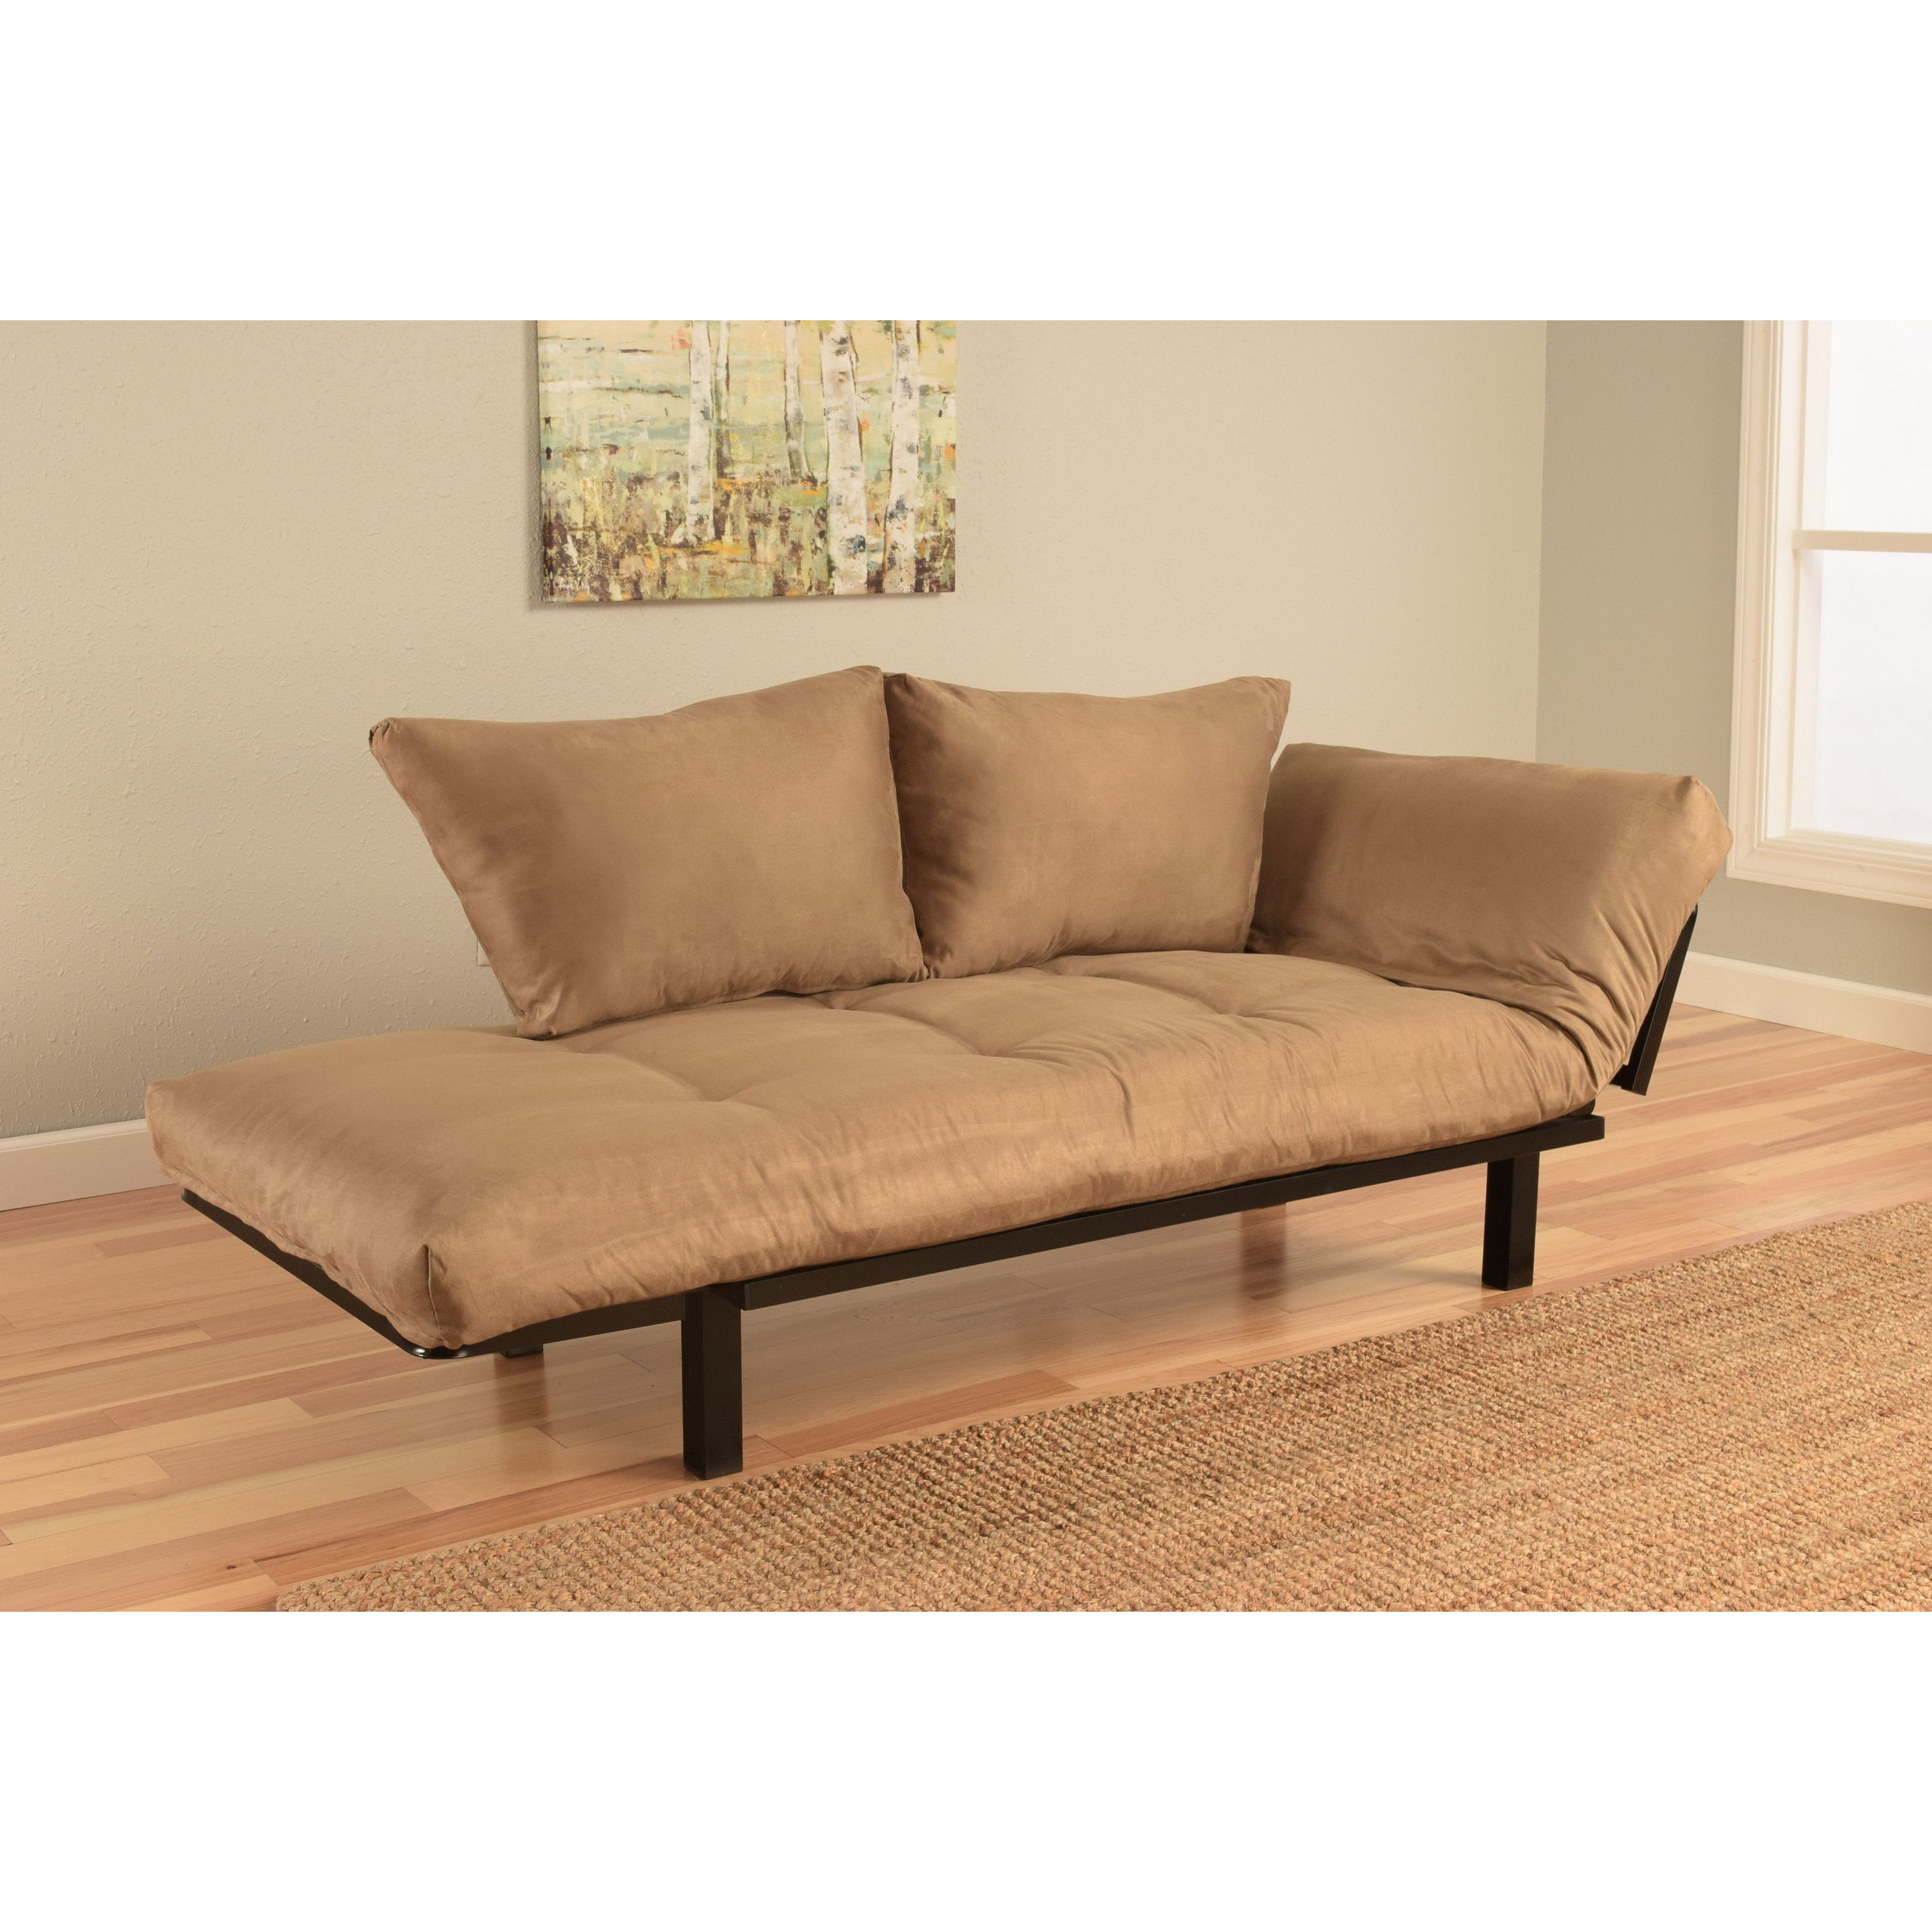 Wayfair For Futons To Match Every Style And Budget Enjoy Free Shipping On Most